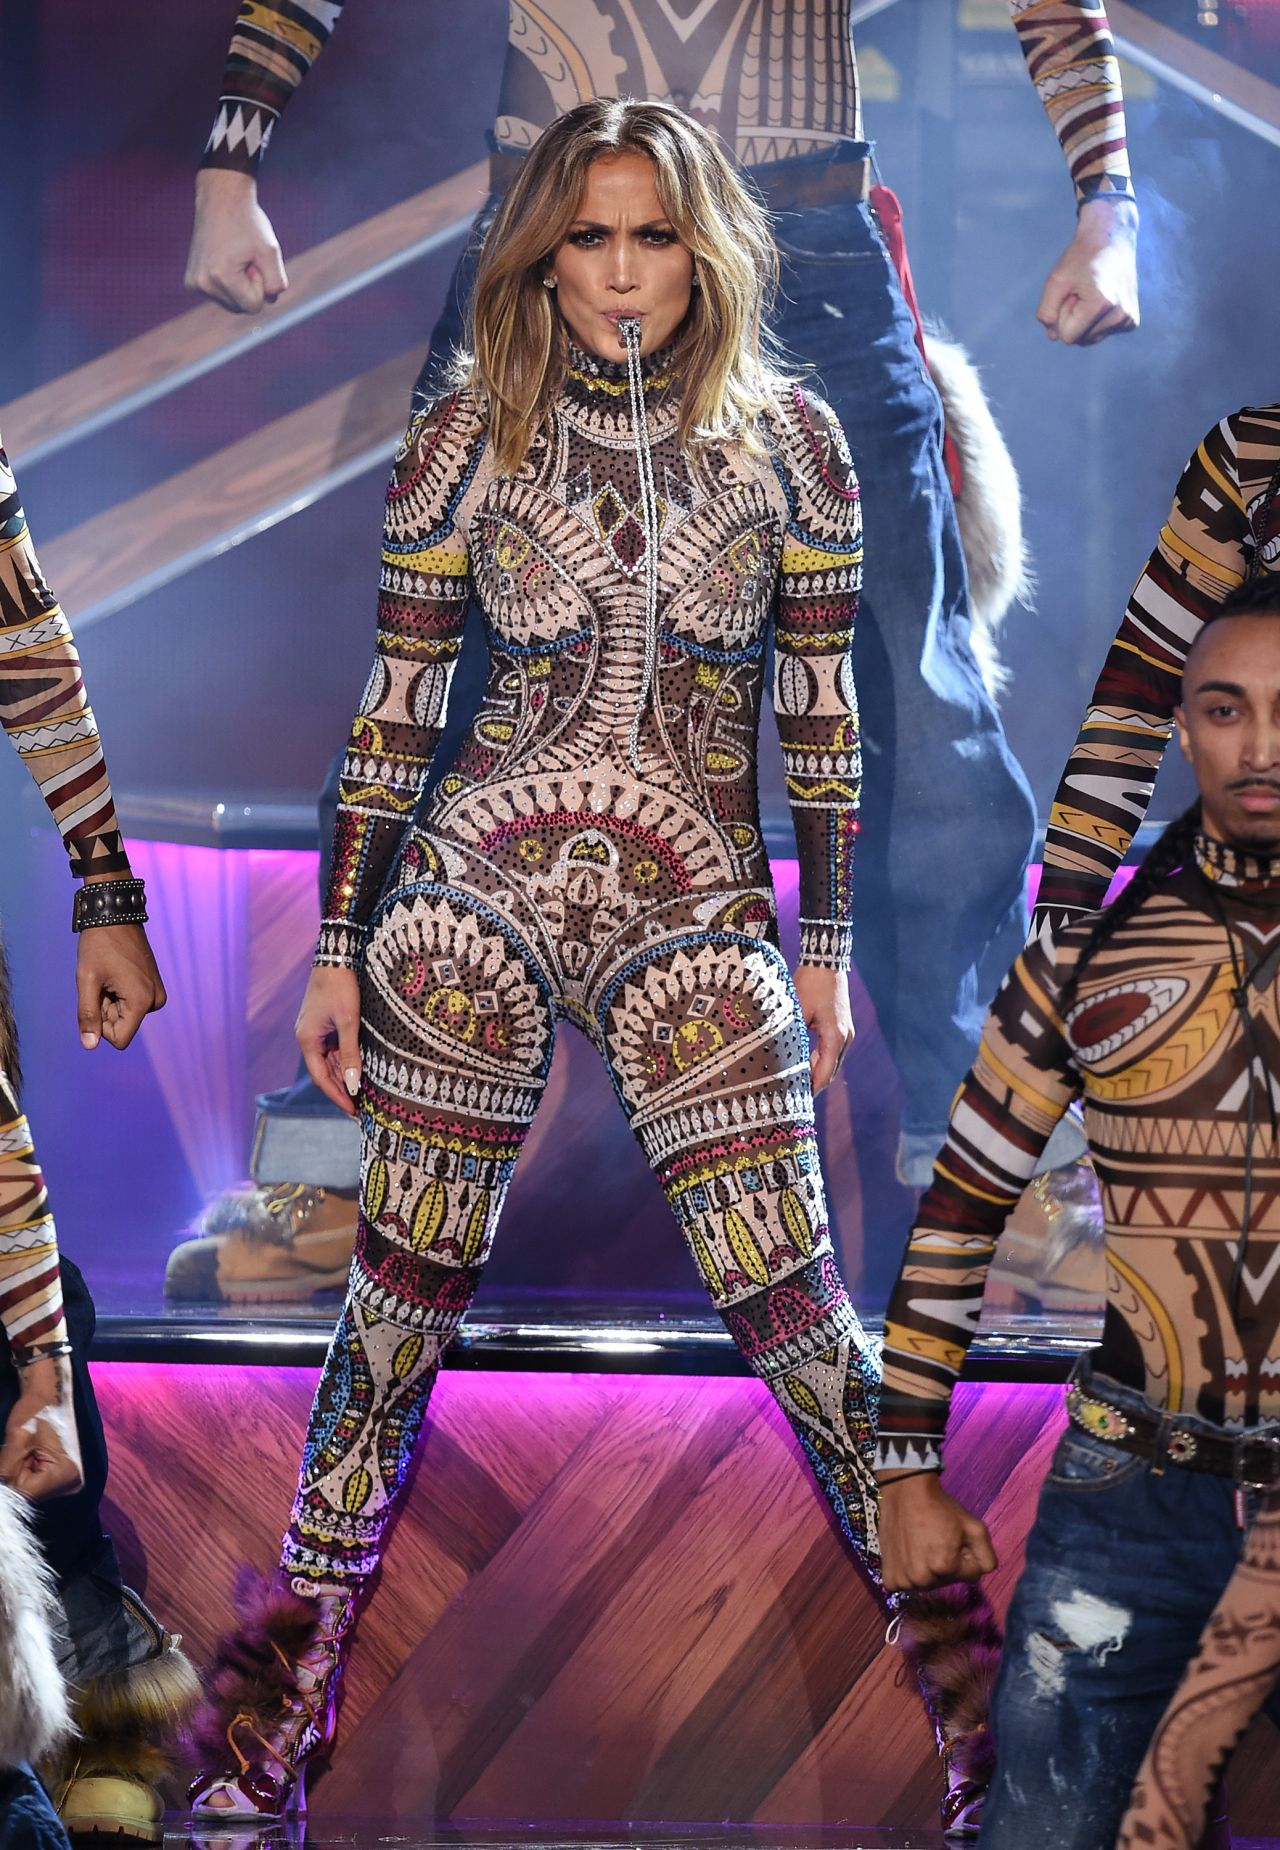 Jennifer Lopez Performs at 2015 American Music Awards in